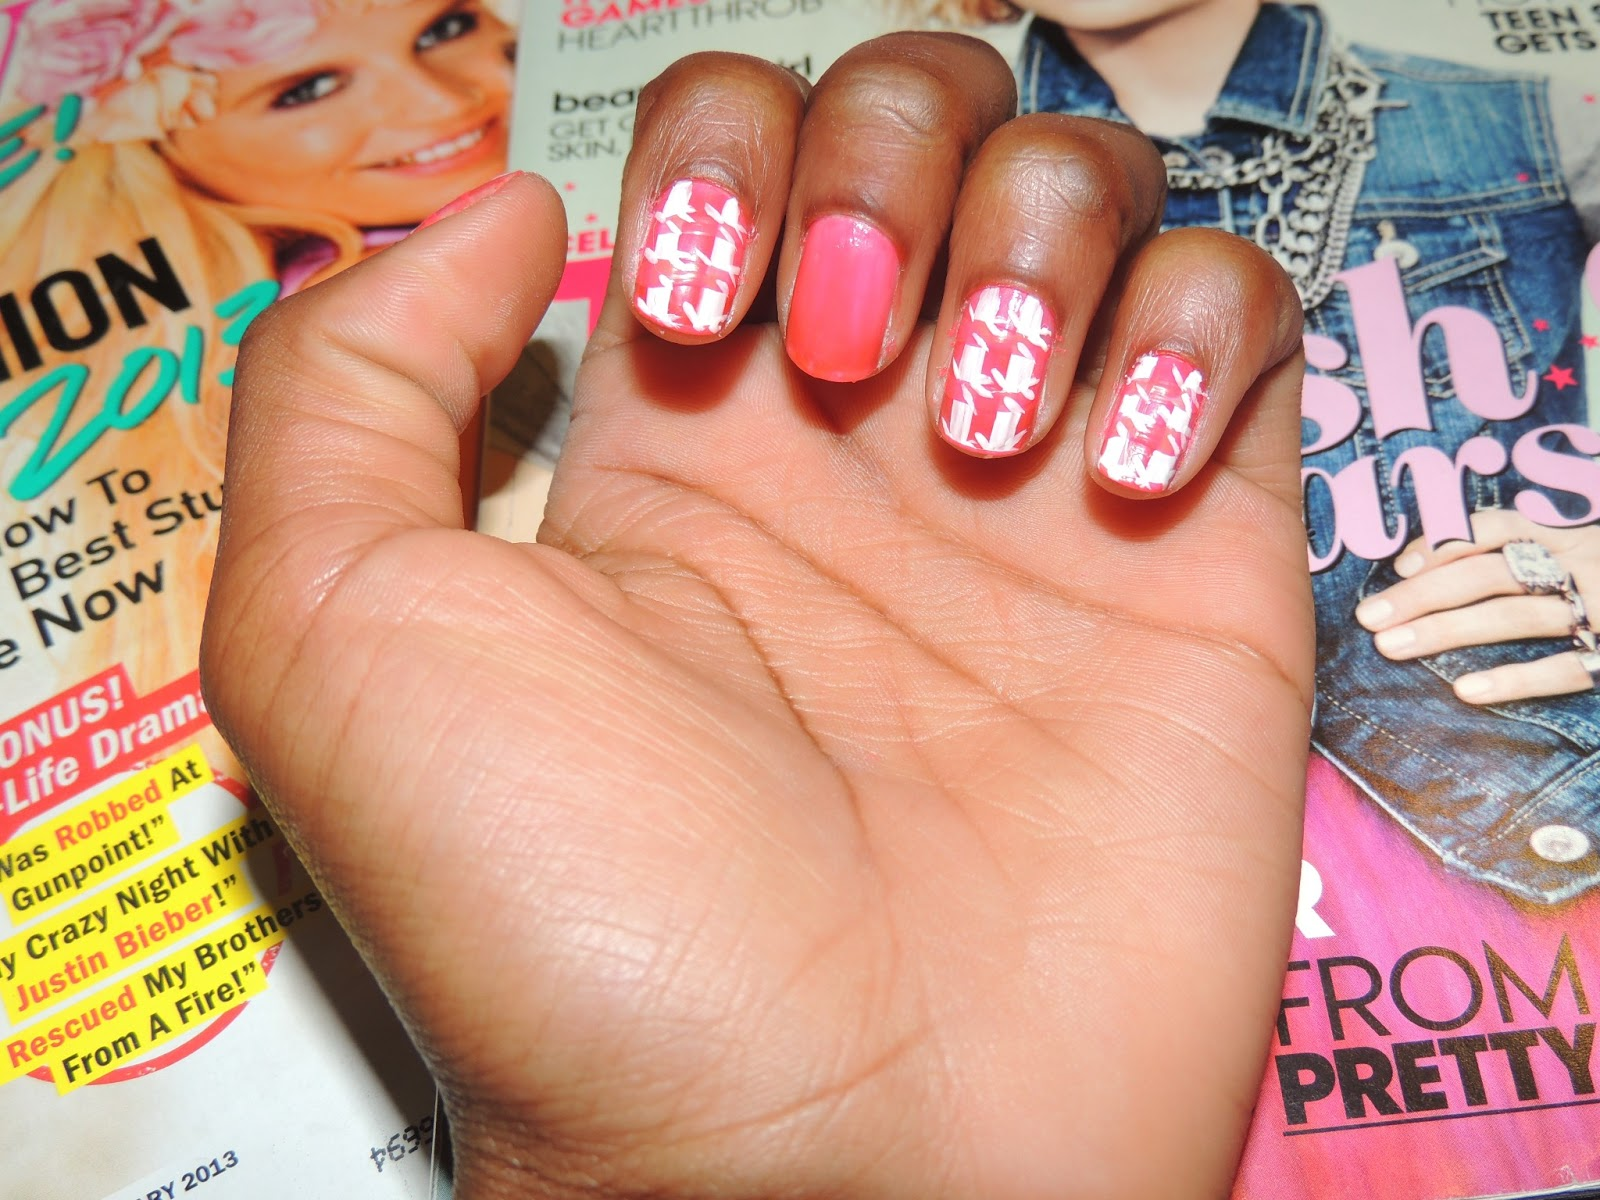 All I Needed To Do My Houndstooth Nails Were A Nail Art Brush White Polish And Solid Color Keep Reading For Step By Tutorial On How